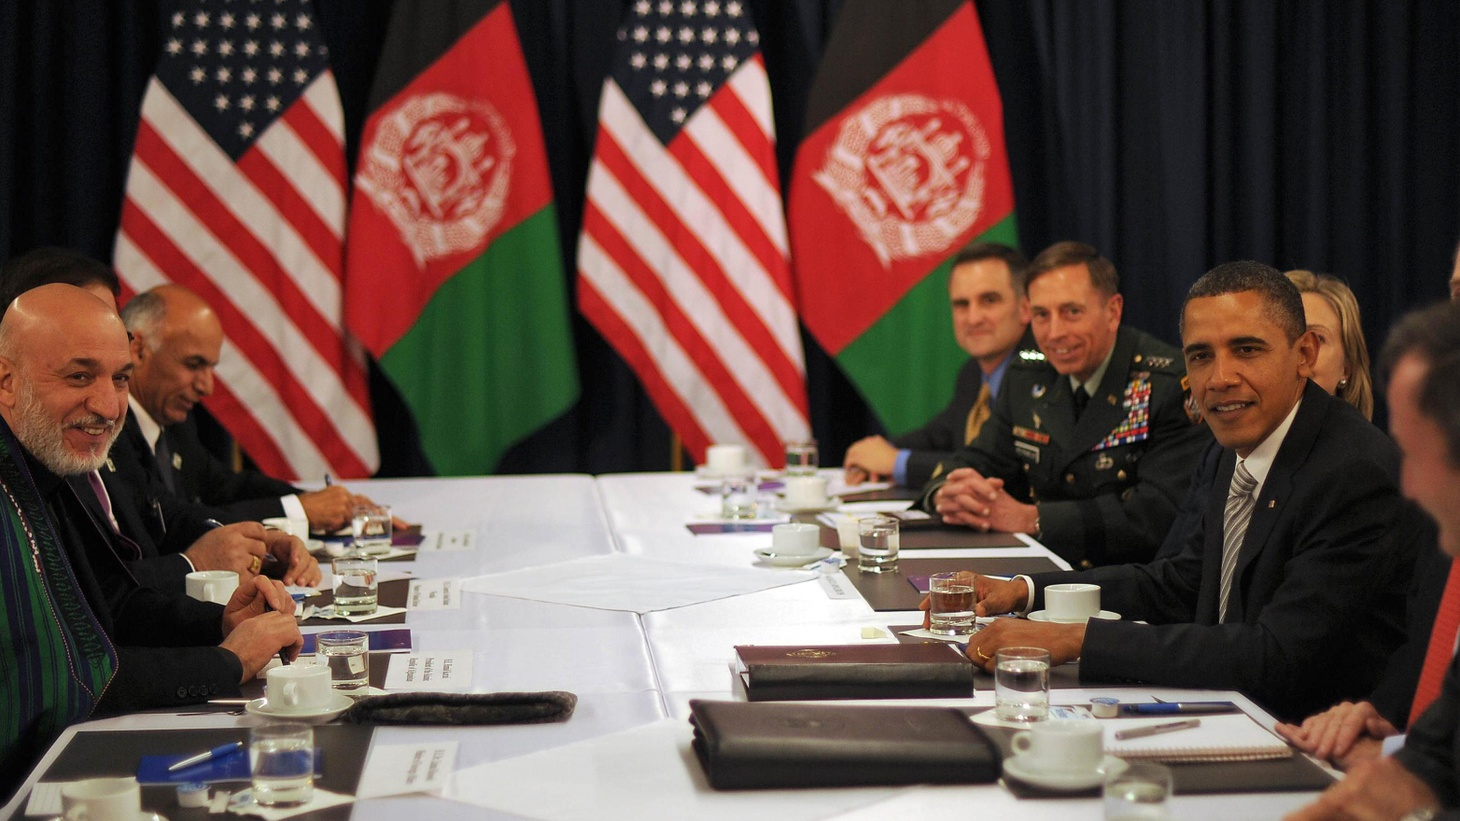 Forget the start of withdrawal from Afghanistan in July of next year. The US and NATO have now extended major combat until 2014, even though President Karzai wants forces reduced. We look at the aftermath of the summit in Lisbon. Also, the TSA responds to traveler outcry over scanners and pat-downs, and Pope Benedict surprises the Roman Catholic Church.